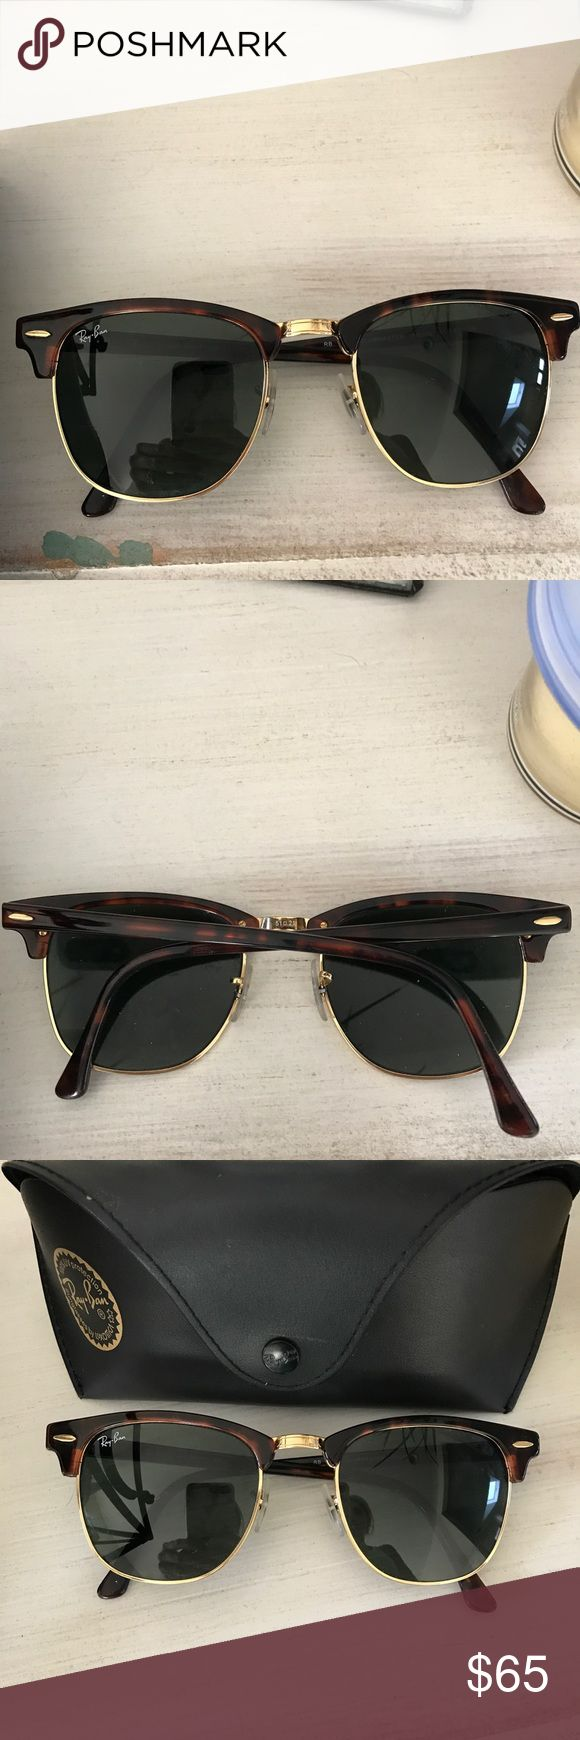 Rayban club master sunglasses Worn a few times..no scratches or signs of wear ..look brand new Ray-Ban Accessories Sunglasses